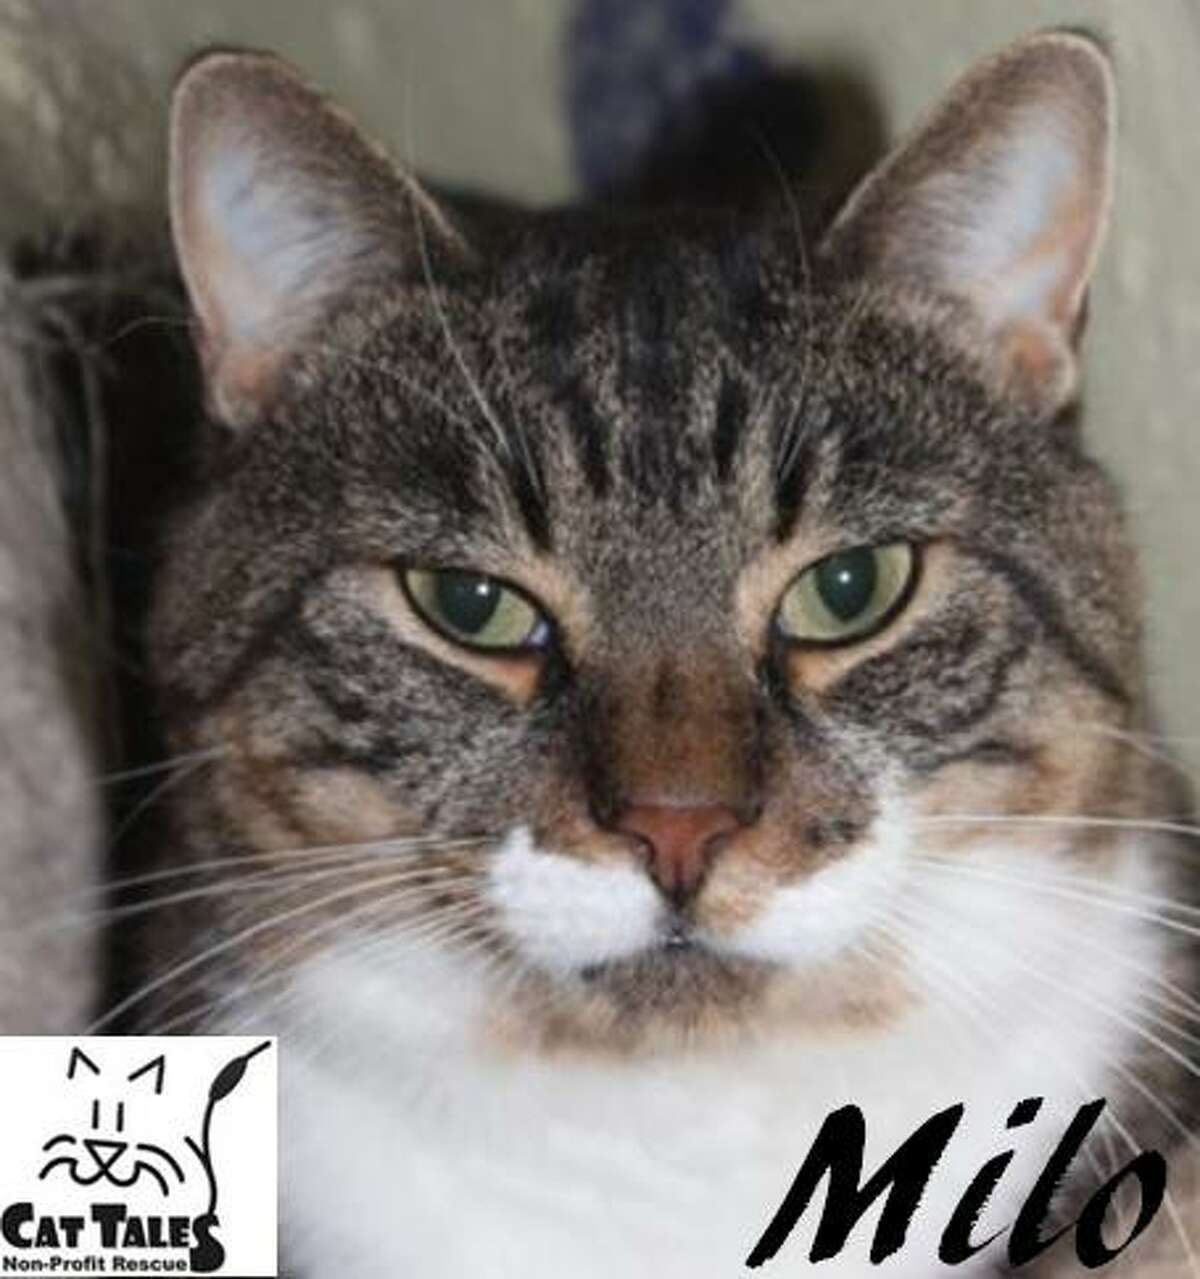 """""""I'm Milo and I've lived most of my life thus far outside, fending for myself. So I am stoked that I am now safe and cared for. Scratches and belly rubs are totally my thing and I really enjoy getting petted as well. I am very affectionate and loving. My best friend is Bailey. We'd love to be adopted together if possible. Our dream is that someone will adopt us and build us a catio (it's OK if you can't do this though). I'm FIV+and I'm not contagious to humans. This is also very difficult for other cats to catch (we'd have to exchange blood). I hope you are MY patient person who is willing to just love me for who I am. I'd love to curl up with you on the couch. Please adopt me, and maybe my best friend Bailey too?"""" Visit http://www.CatTalesCT.org/cats/Milo-2, call 860-344-9043 or email info@CatTalesCT.org. Watch our TV commercial: https://youtu.be/Y1MECIS4mIc"""